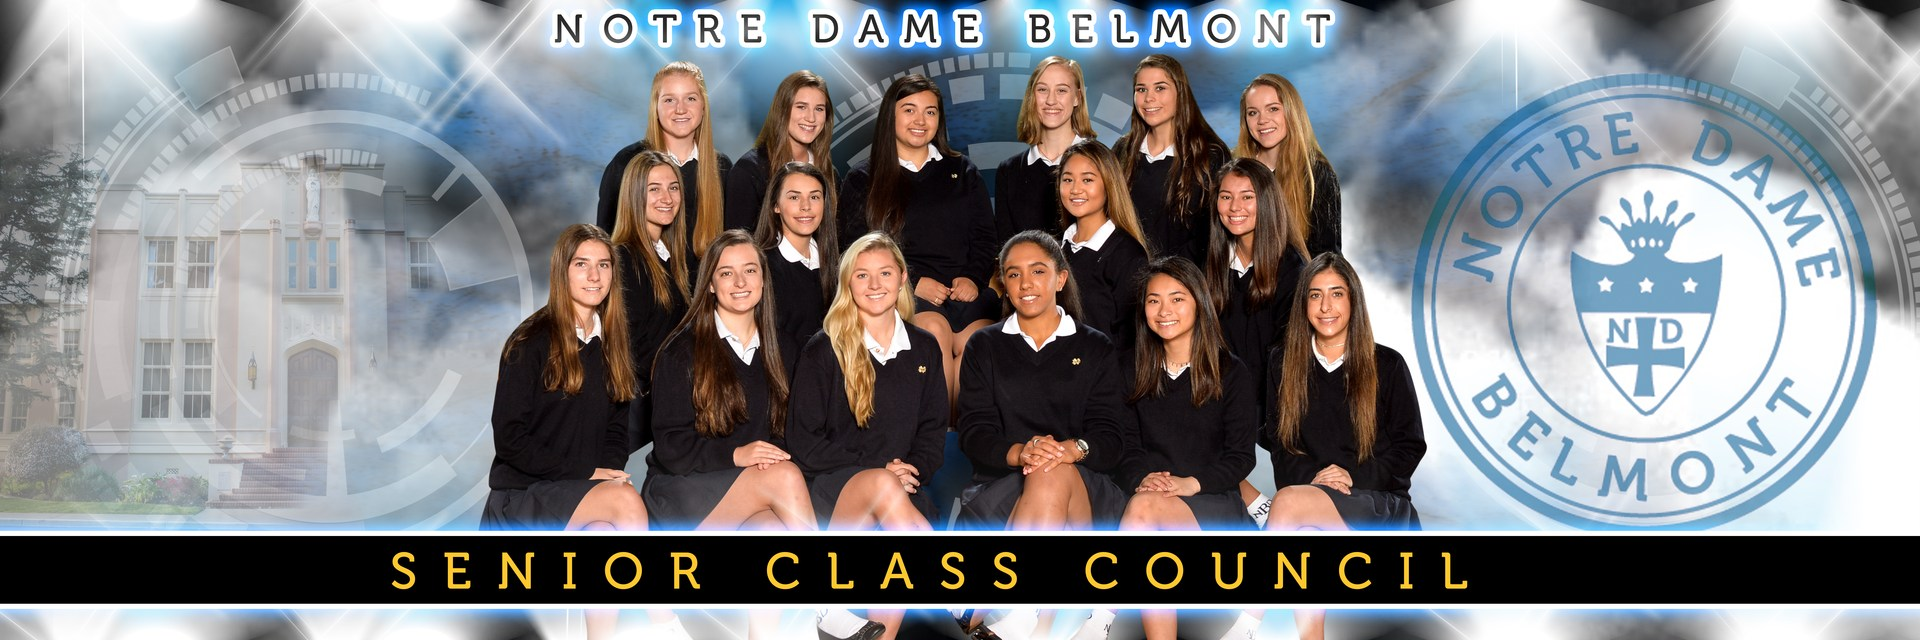 Junior Class Council